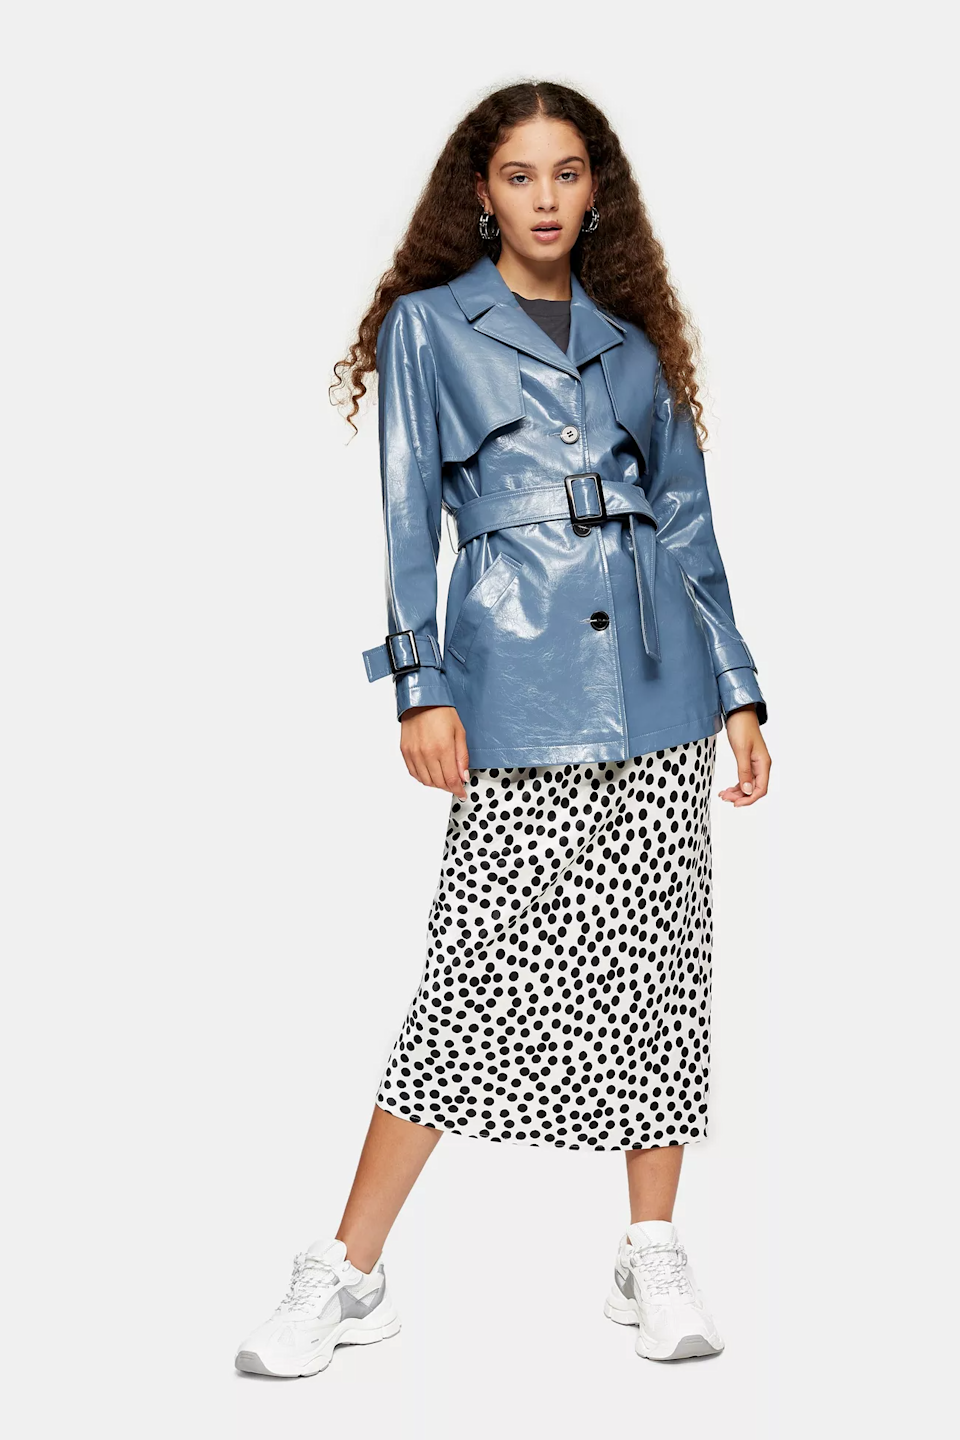 "<br><br><strong>Topshop</strong> Blue Vinyl Belted Shacket, $, available at <a href=""https://go.skimresources.com/?id=30283X879131&url=https%3A%2F%2Fus.topshop.com%2Fen%2Ftsus%2Fproduct%2Fdolly-vinyl-shacket-9692881"" rel=""nofollow noopener"" target=""_blank"" data-ylk=""slk:Topshop"" class=""link rapid-noclick-resp"">Topshop</a>"